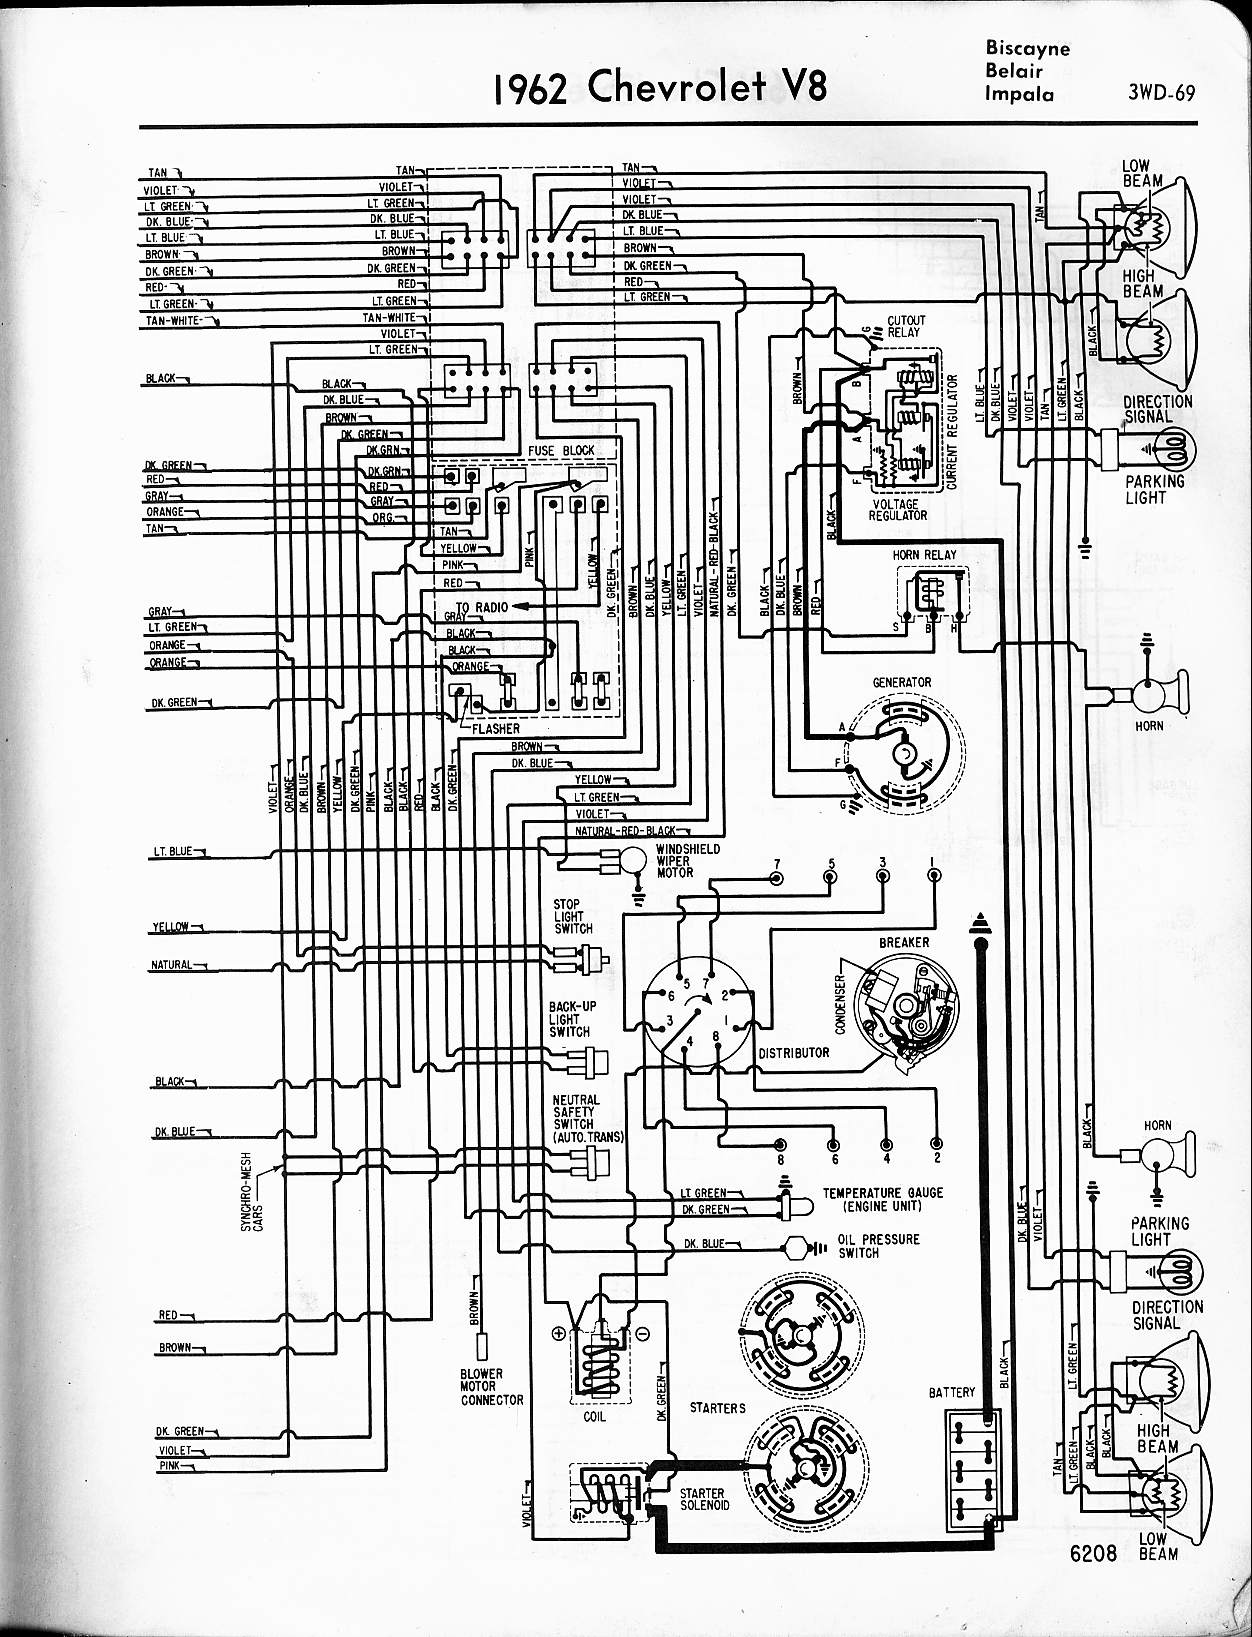 57 65 chevy wiring diagrams lincoln wiring diagram 1962 v8 biscayne,  belair, impala right